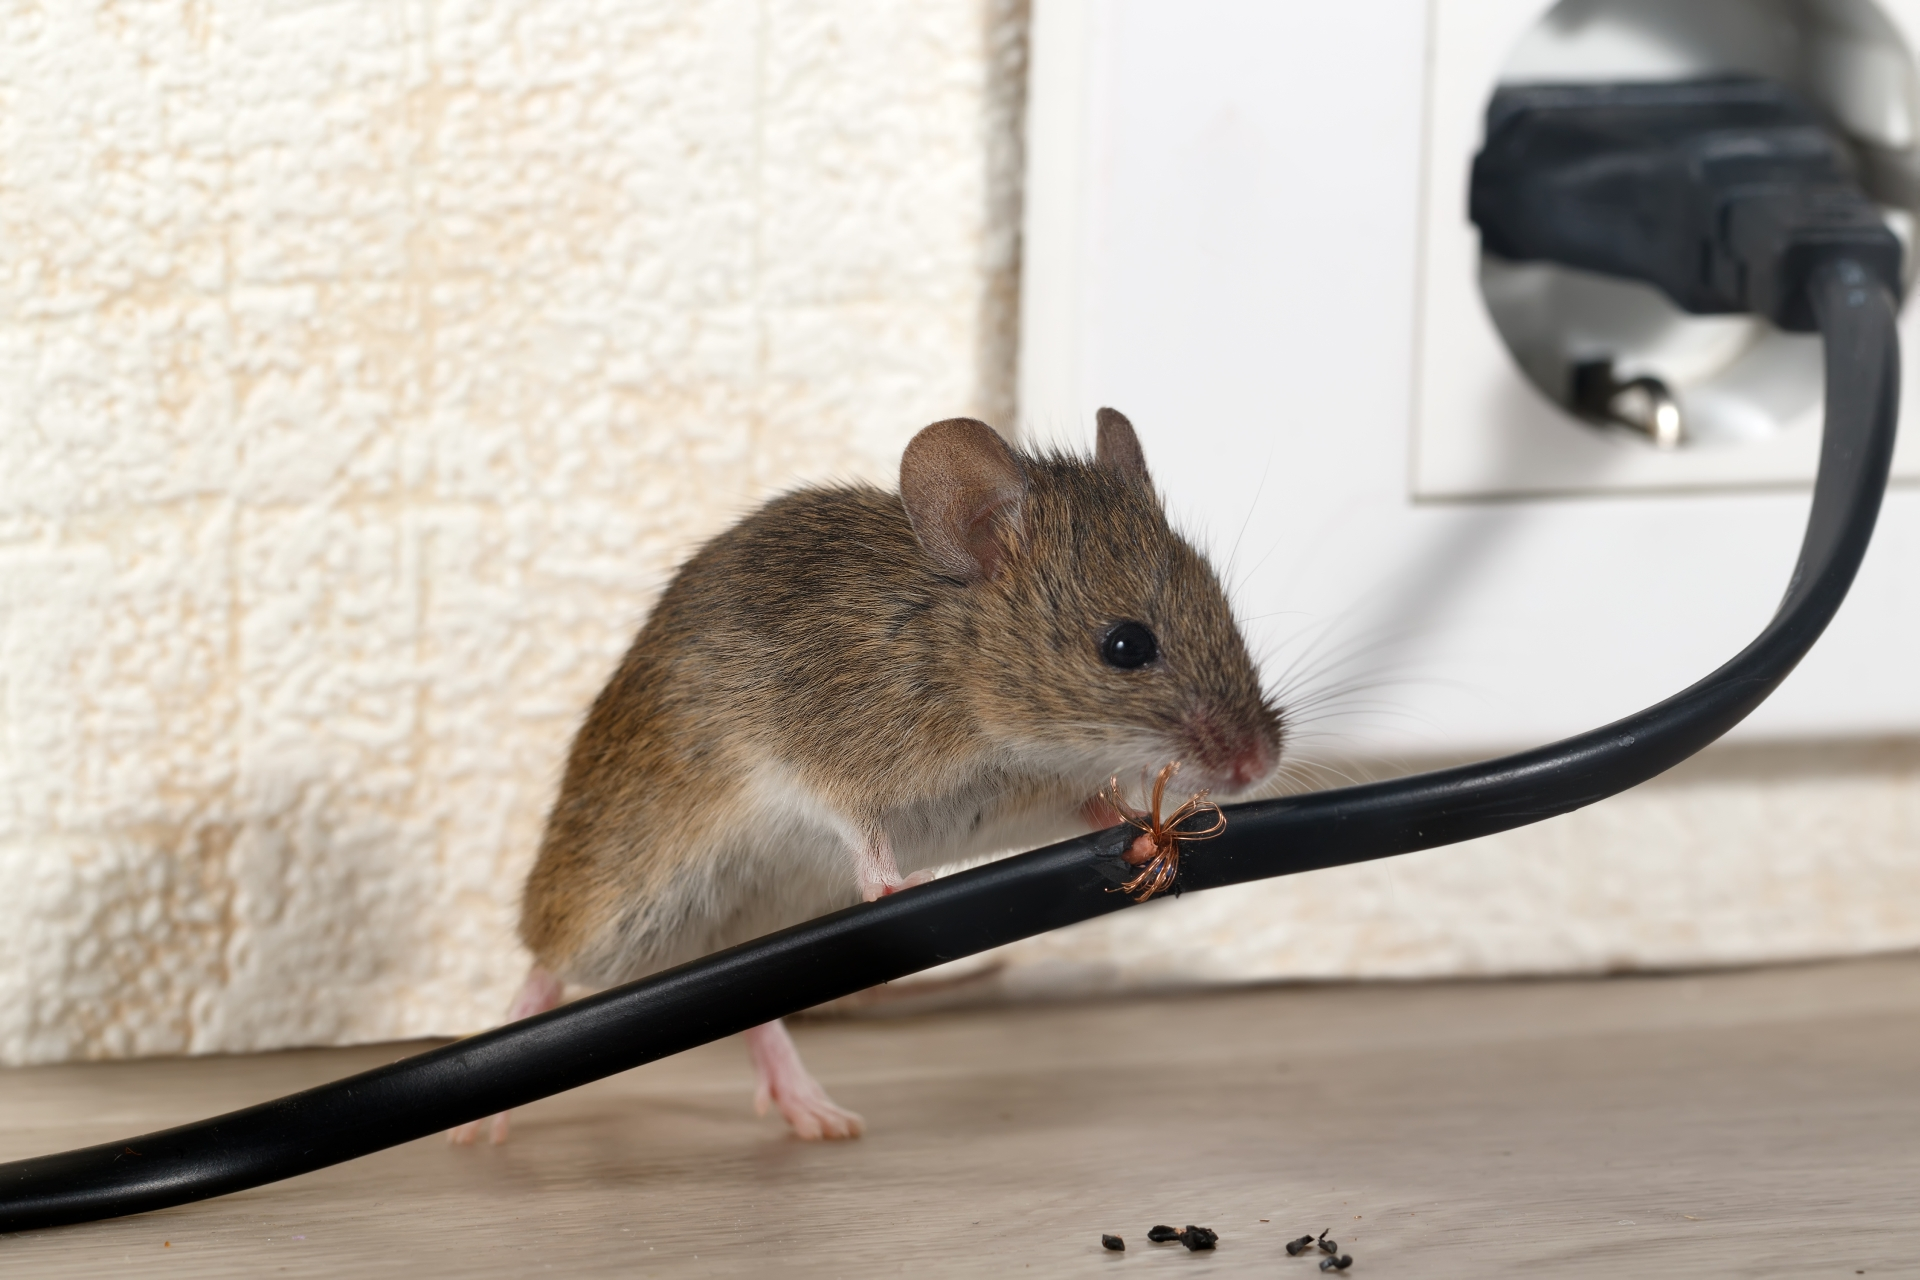 Mice Infestation, Pest Control in Broxbourne, EN10. Call Now 020 8166 9746